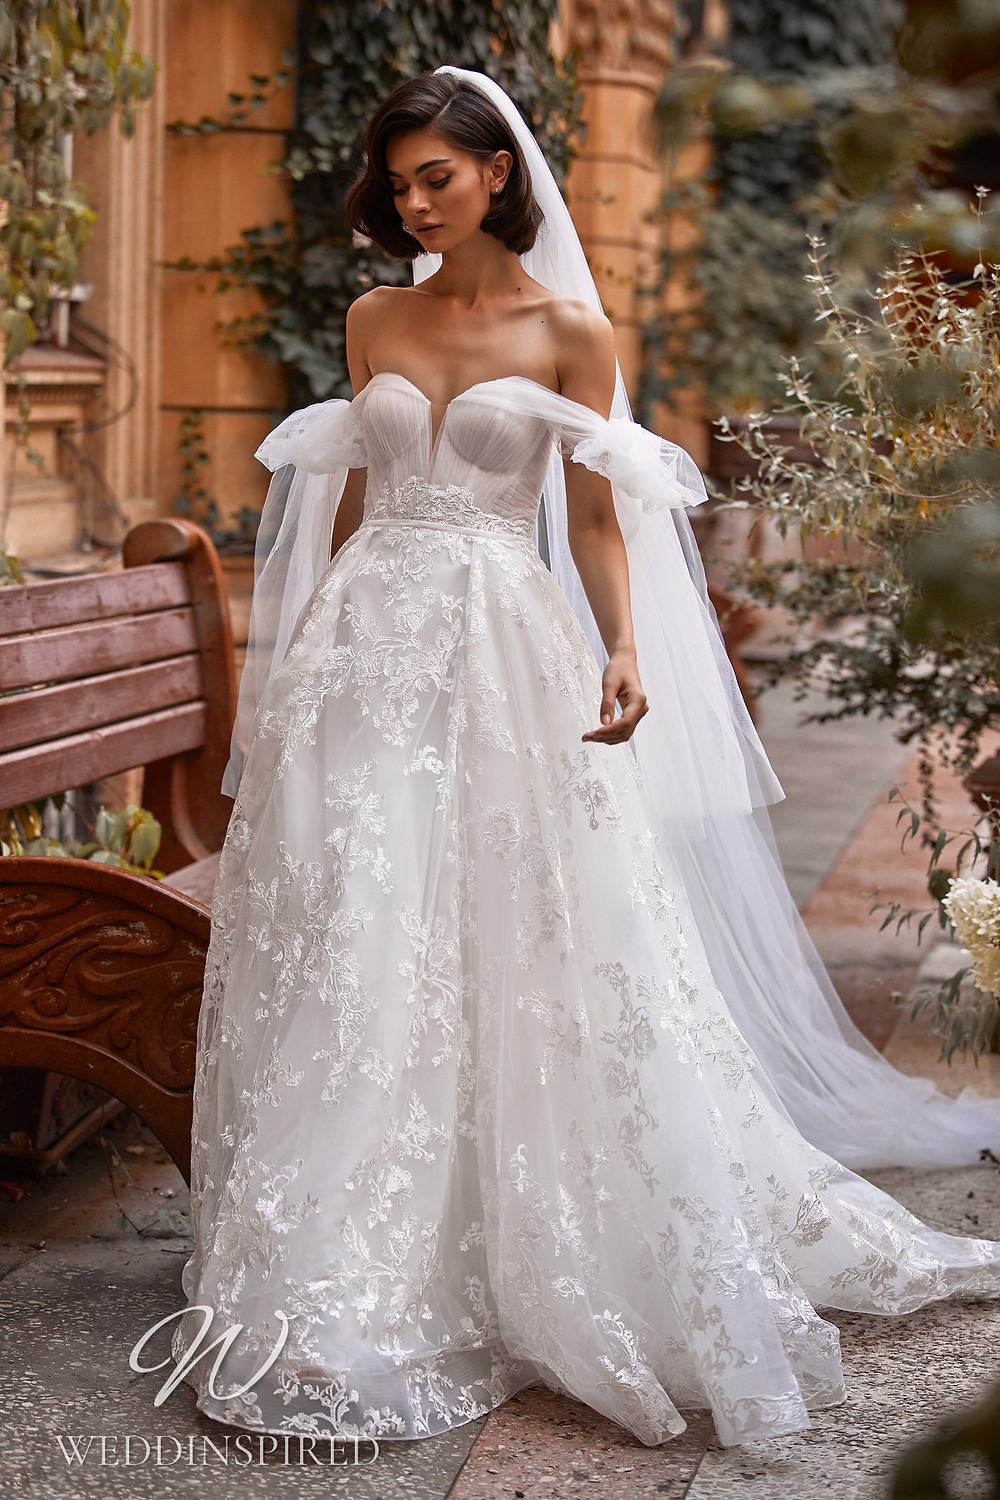 A Daria Karlozi 2021 strapless lace and tulle boho A-line wedding dress